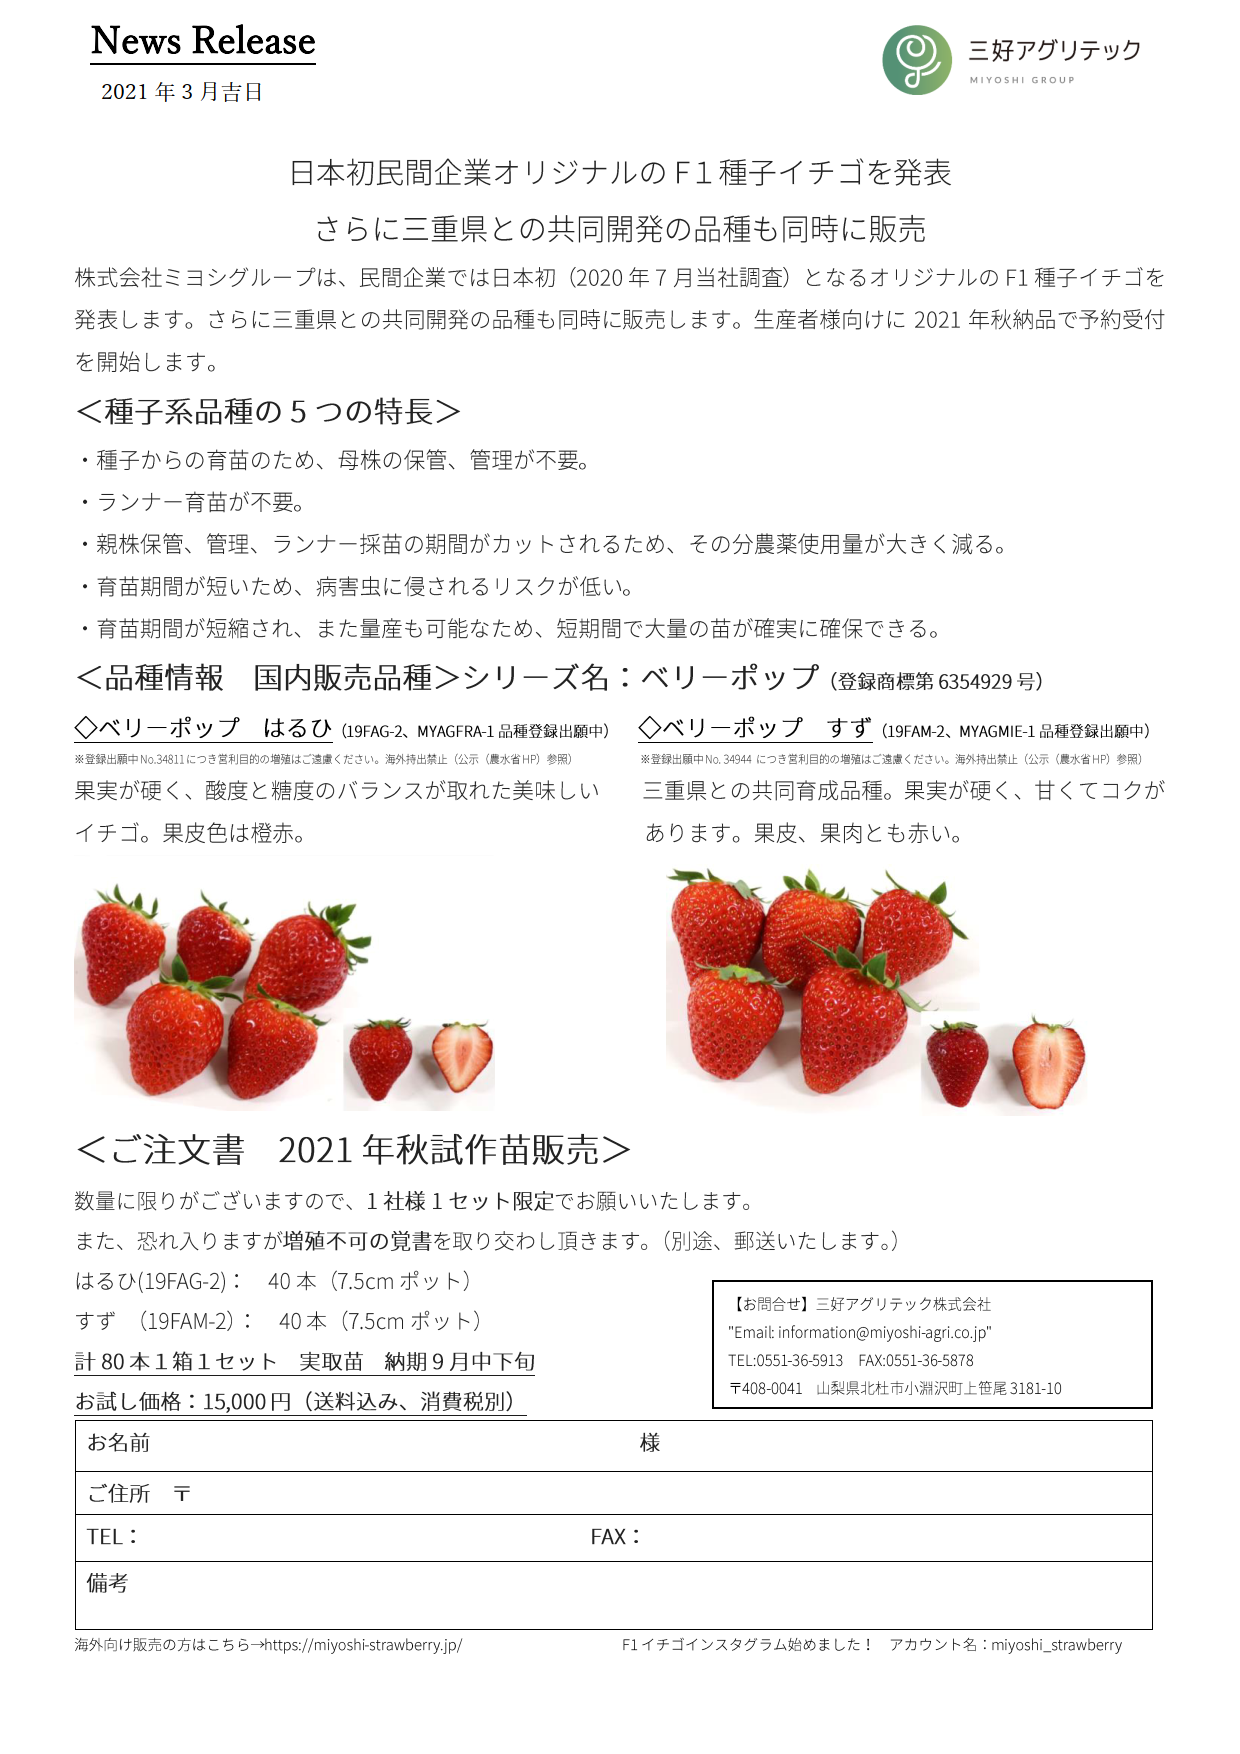 """<a href=""""https://bz.airlibro.jp/book/view_html5.php?id=445"""">F1種子イチゴ国内向けチラシ</a>"""